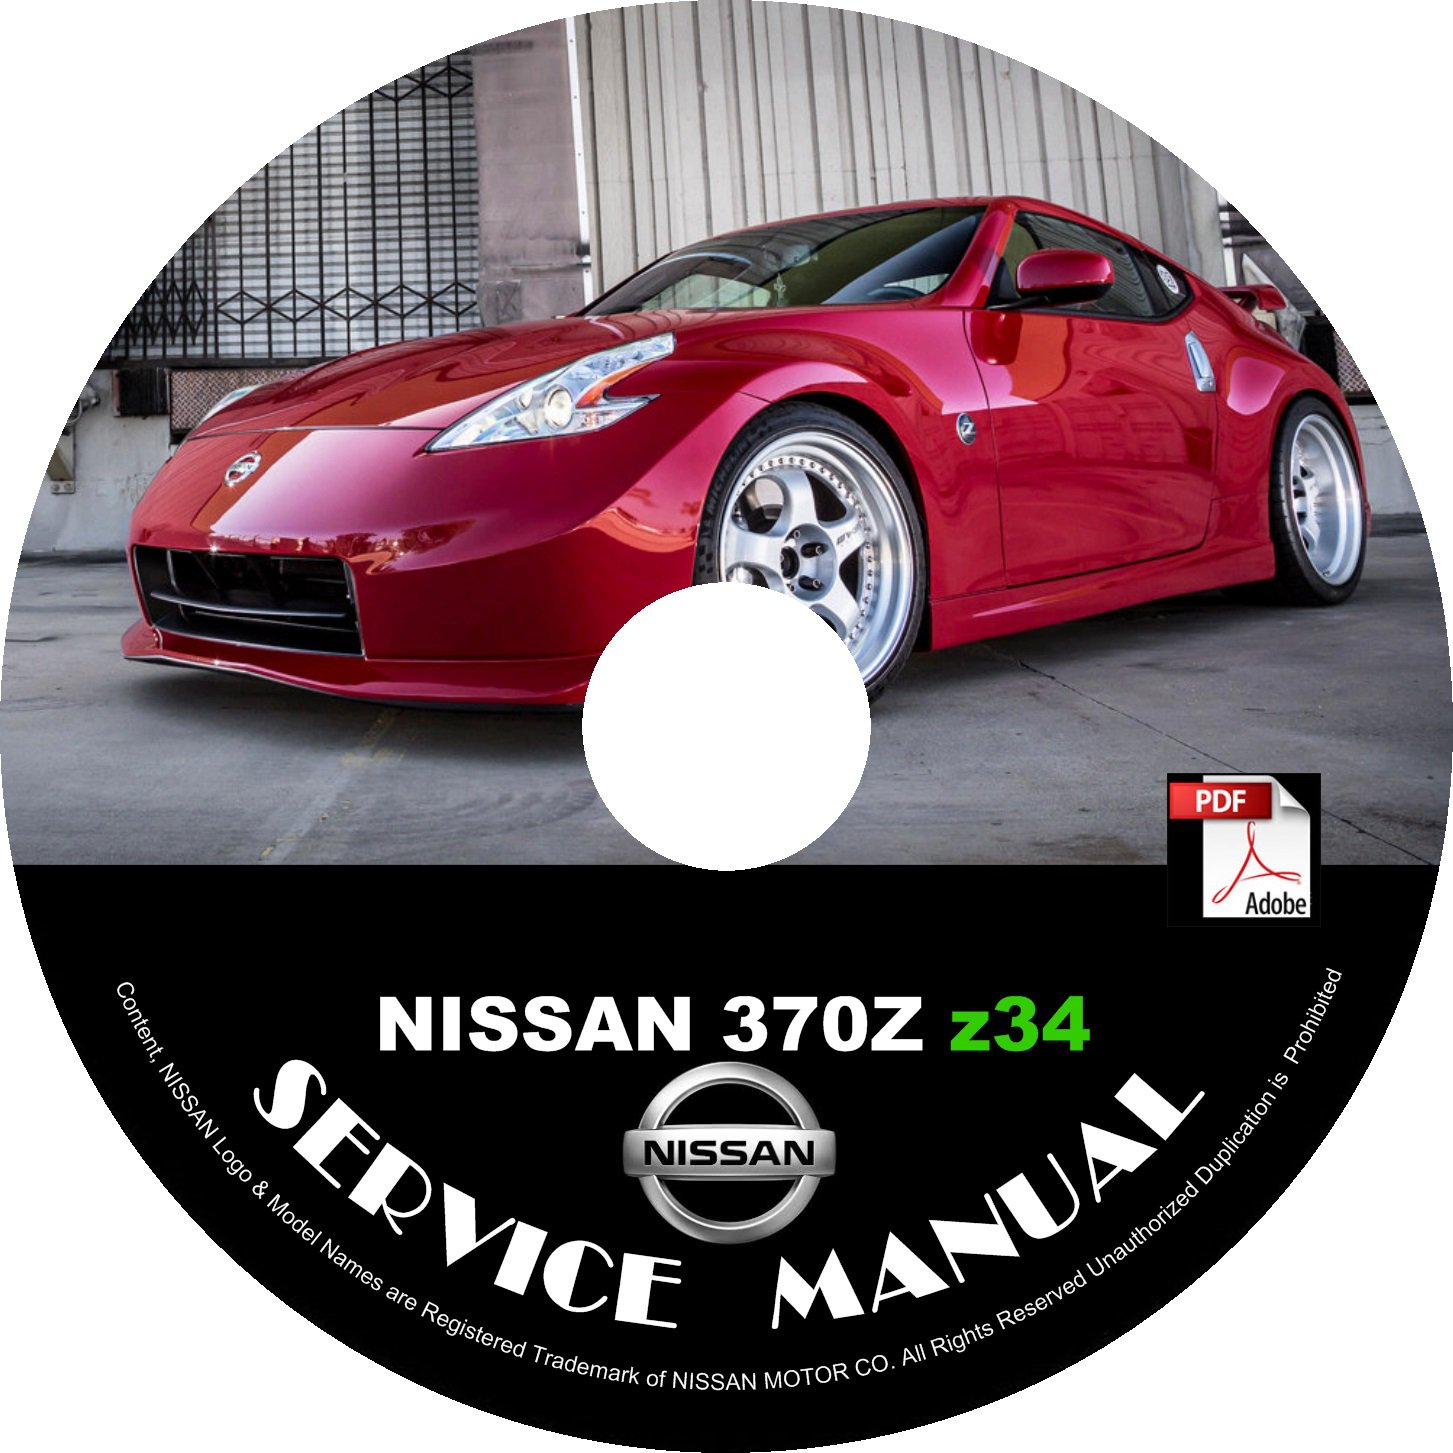 2009 Nissan 370Z Factory Service Repair Shop Manual on CD 09 Workshop Guide